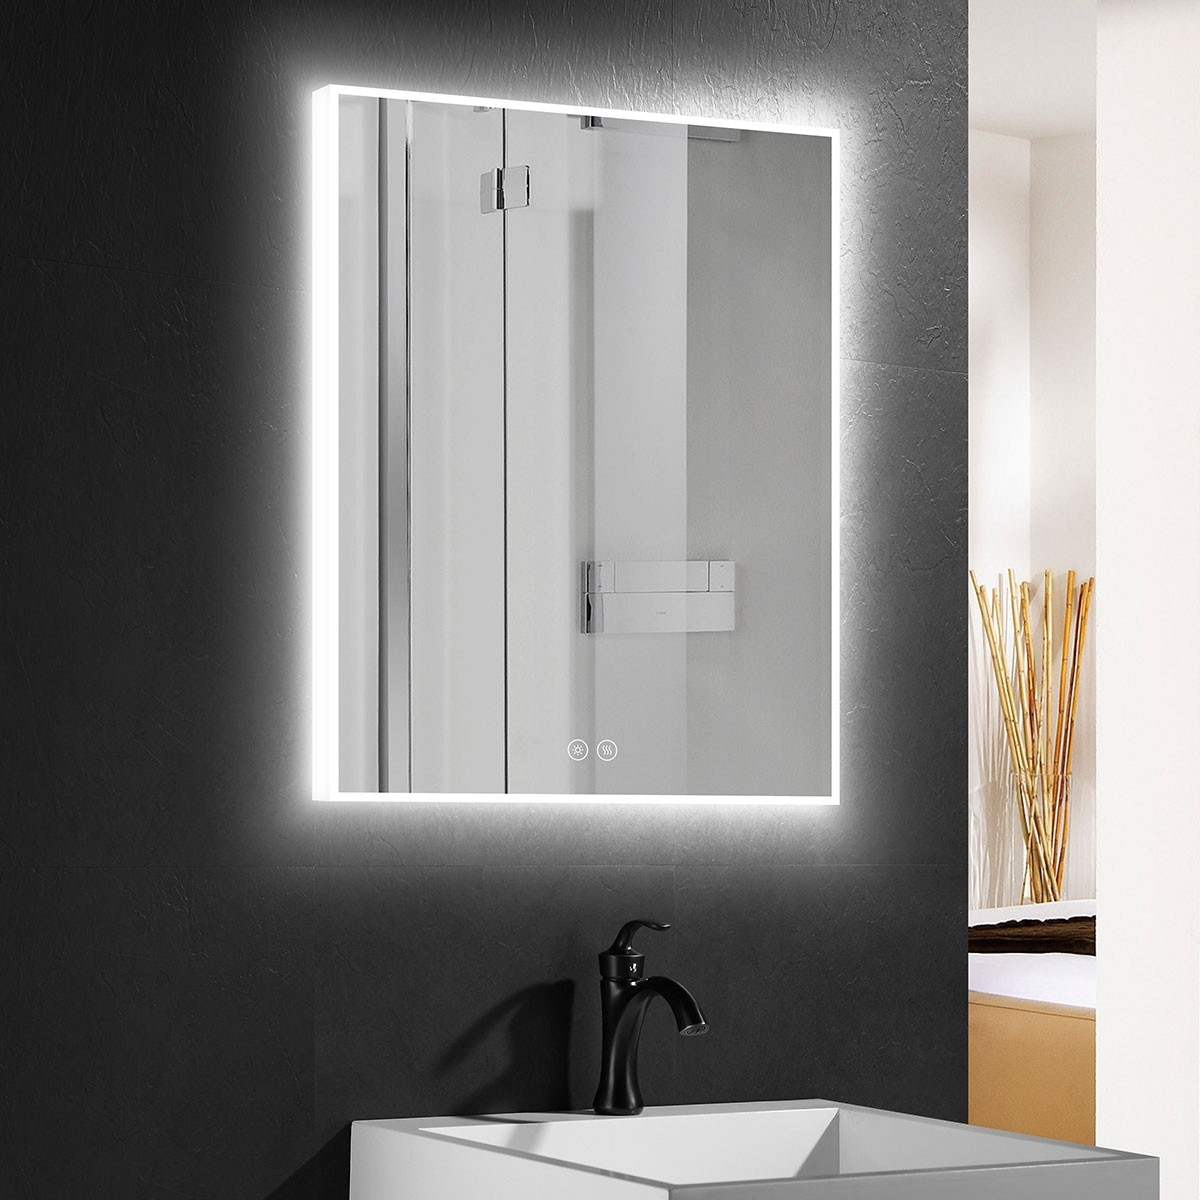 DECORAPORT 24 x 32 Inch LED Bathroom Mirror with Touch Button,Anti Fog, Dimmable, Vertical & Horizontal Mount (D414-2432)